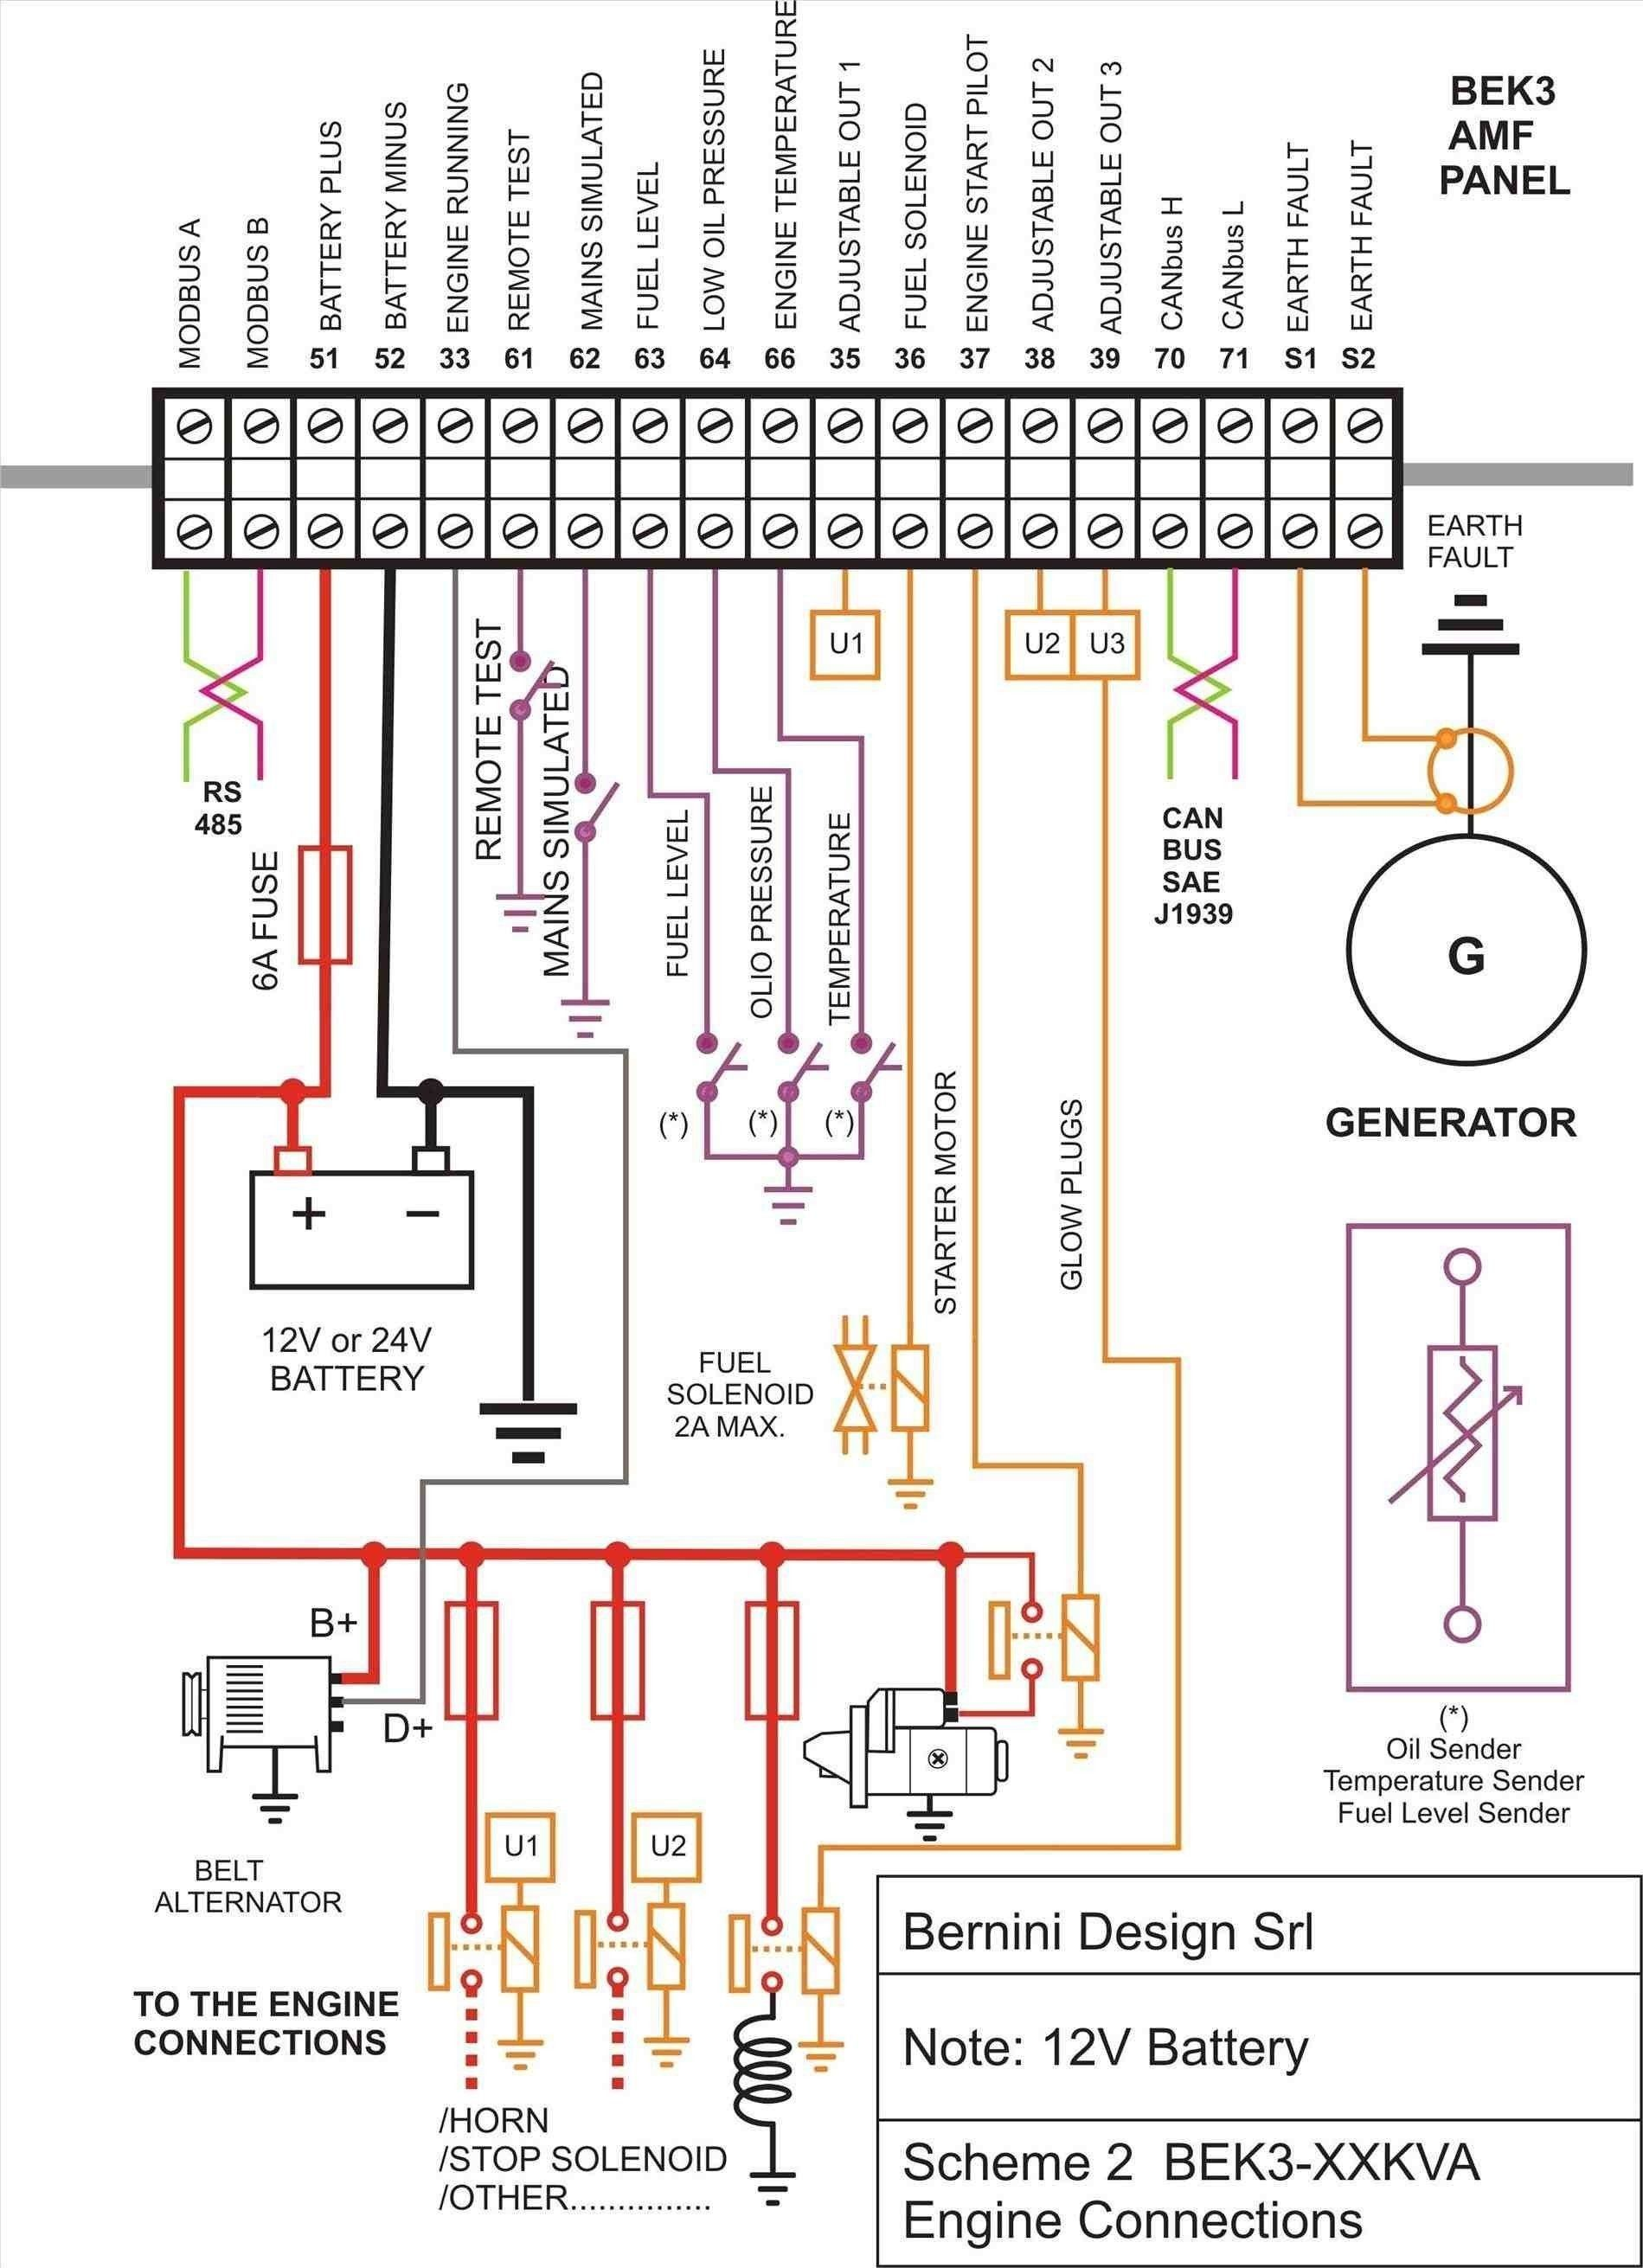 Awesome Wiring Diagram Of Door Access Control System #diagrams  #digramssample #dia… | Electrical circuit diagram, Electrical wiring  diagram, Electrical panel wiringPinterest